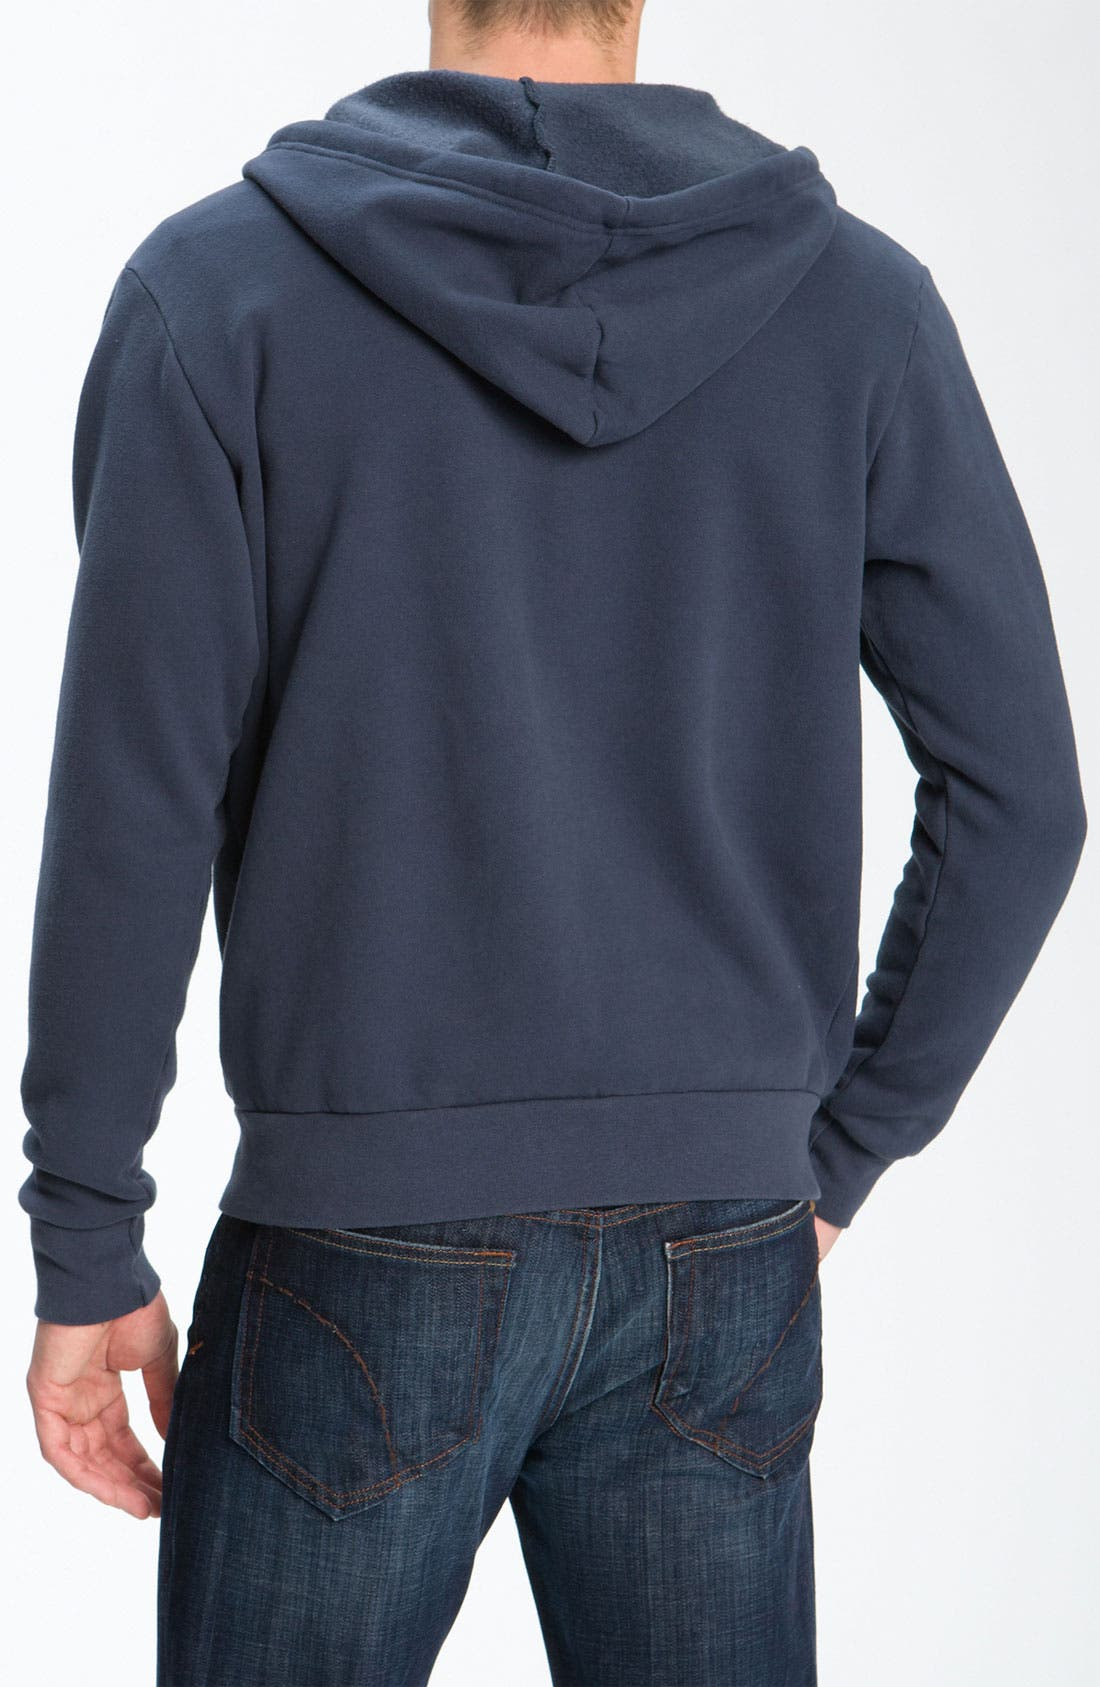 'Boston Red Sox' Hoodie,                             Alternate thumbnail 2, color,                             410